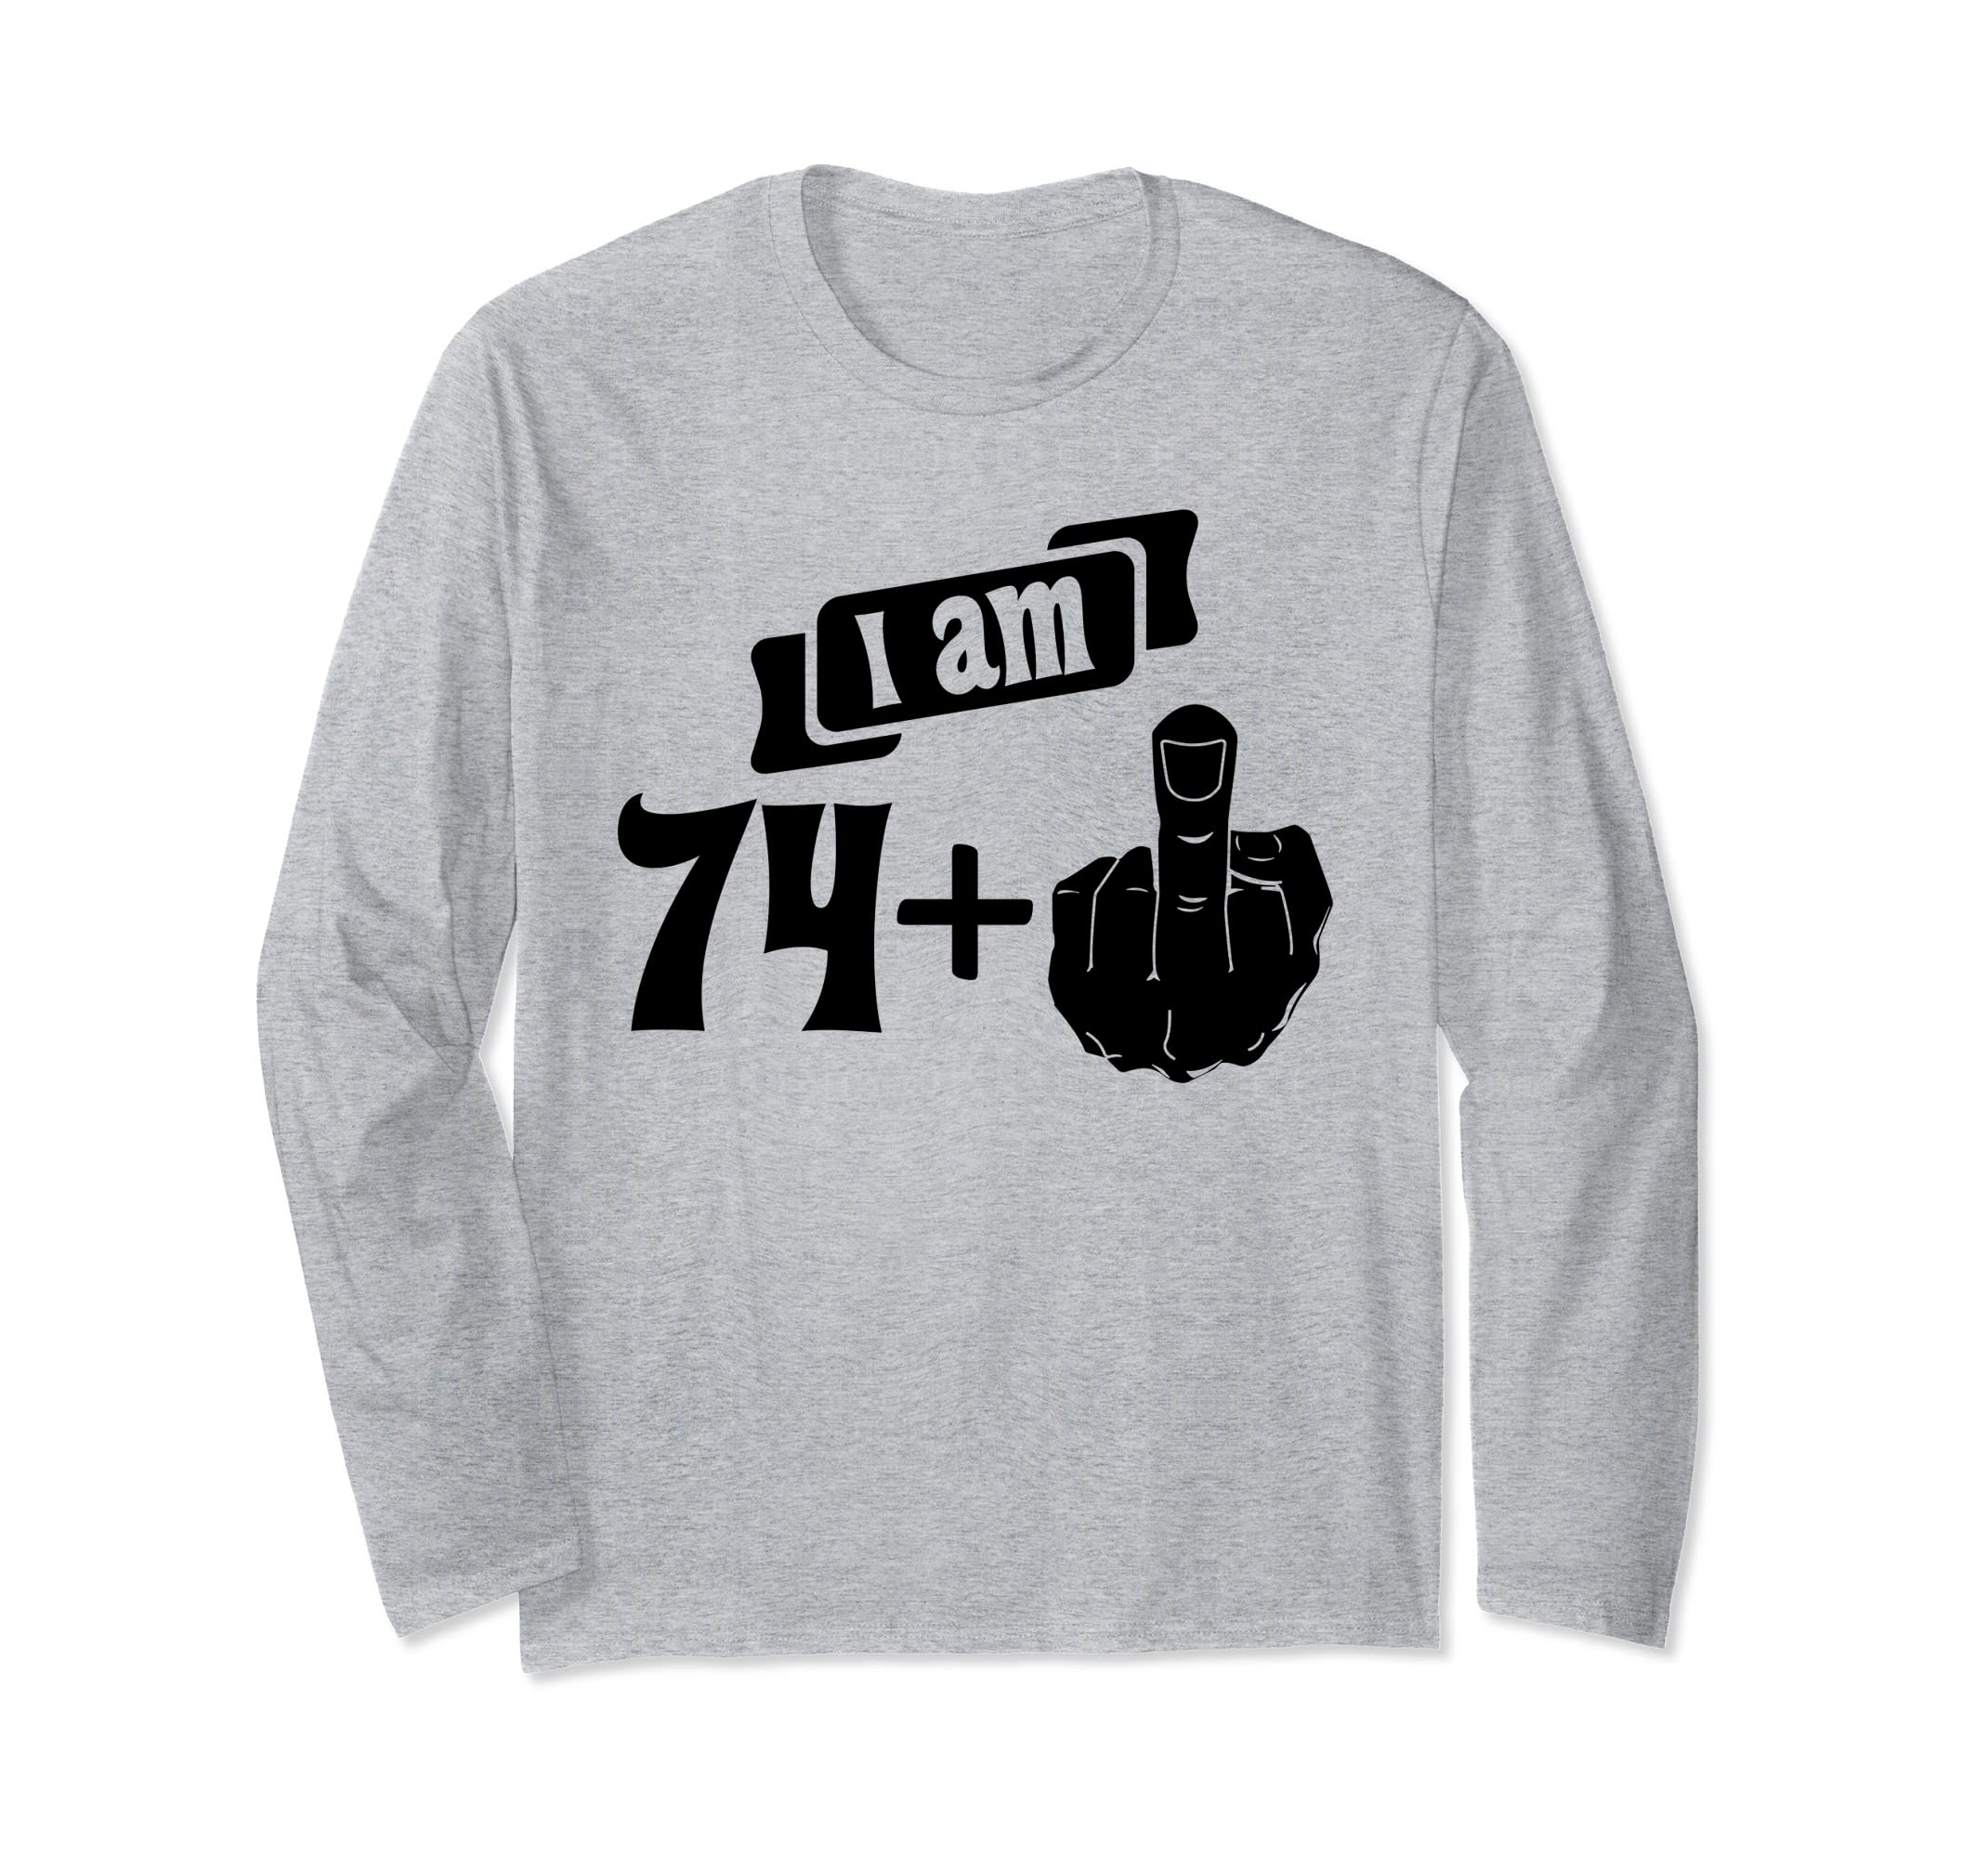 I Am 74 Plus Middle Finger 75th Birthday Long Sleeve Shirt-SFL